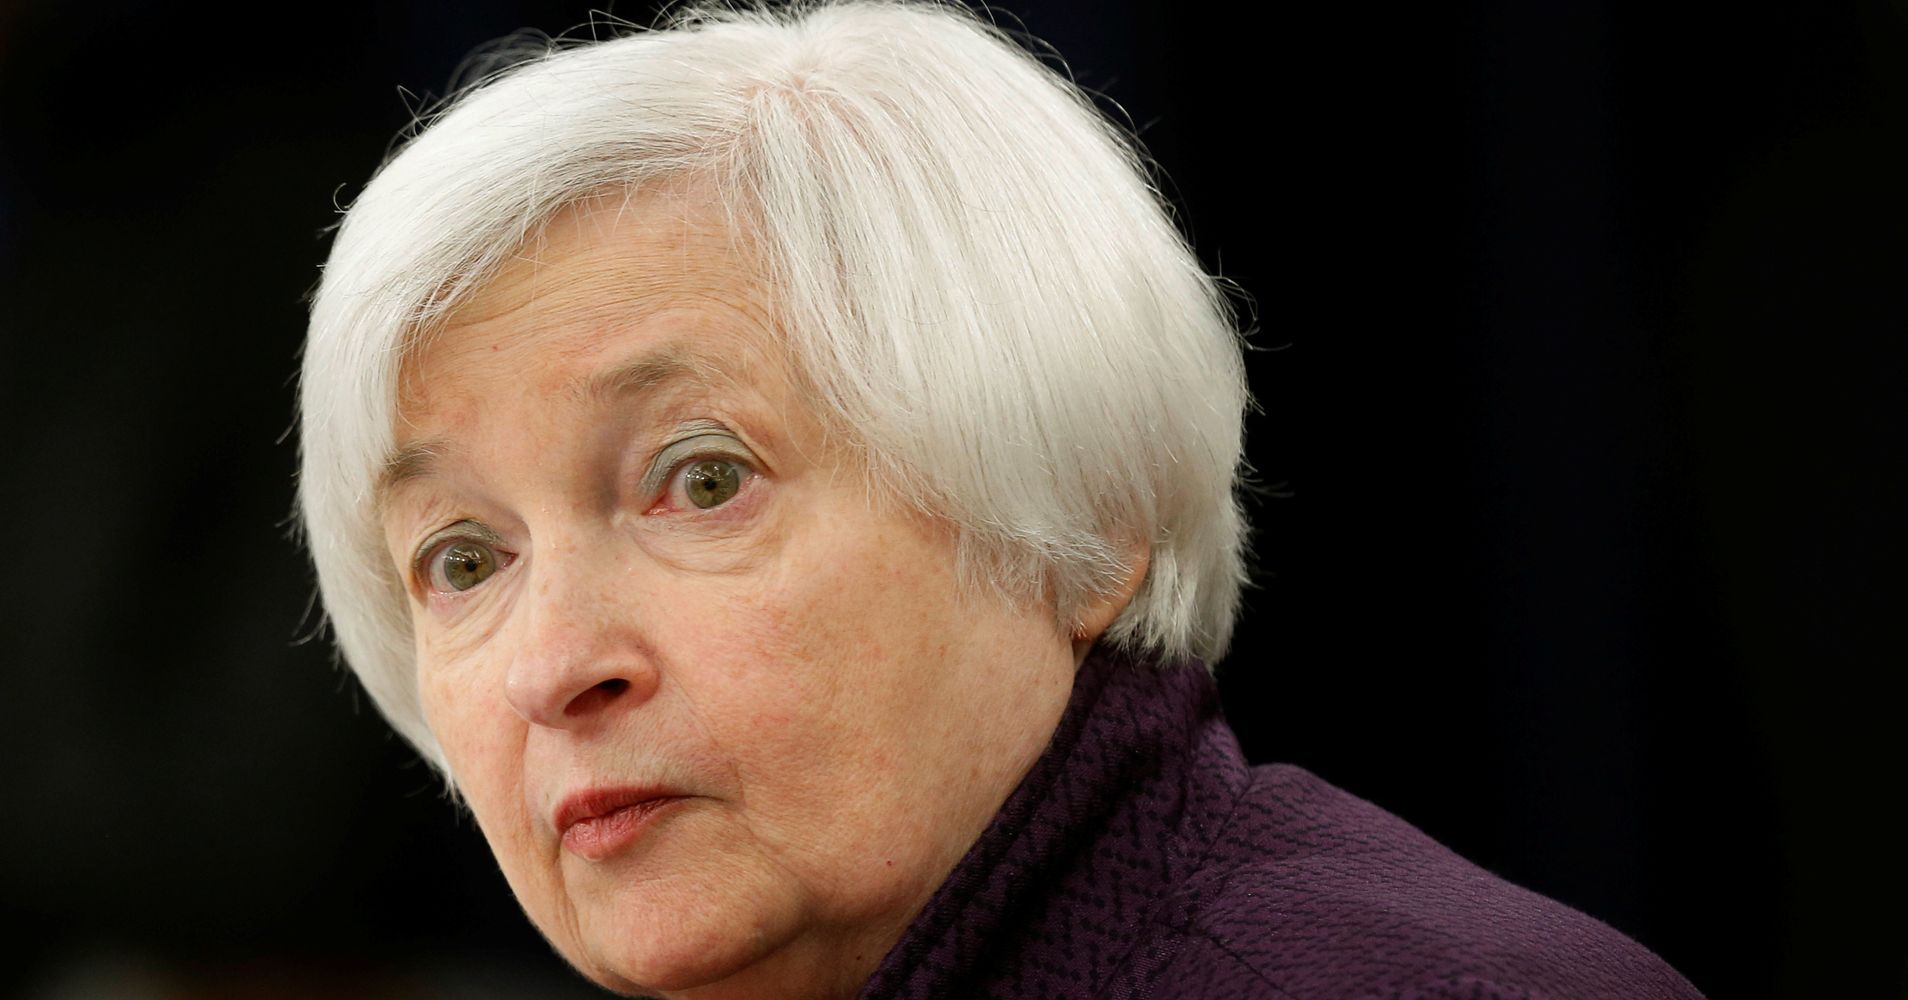 Yellen globalization makes higher education increasingly important wall street journal - The Conspiracy Theory You Probably Didn T Notice At Monday S Debate